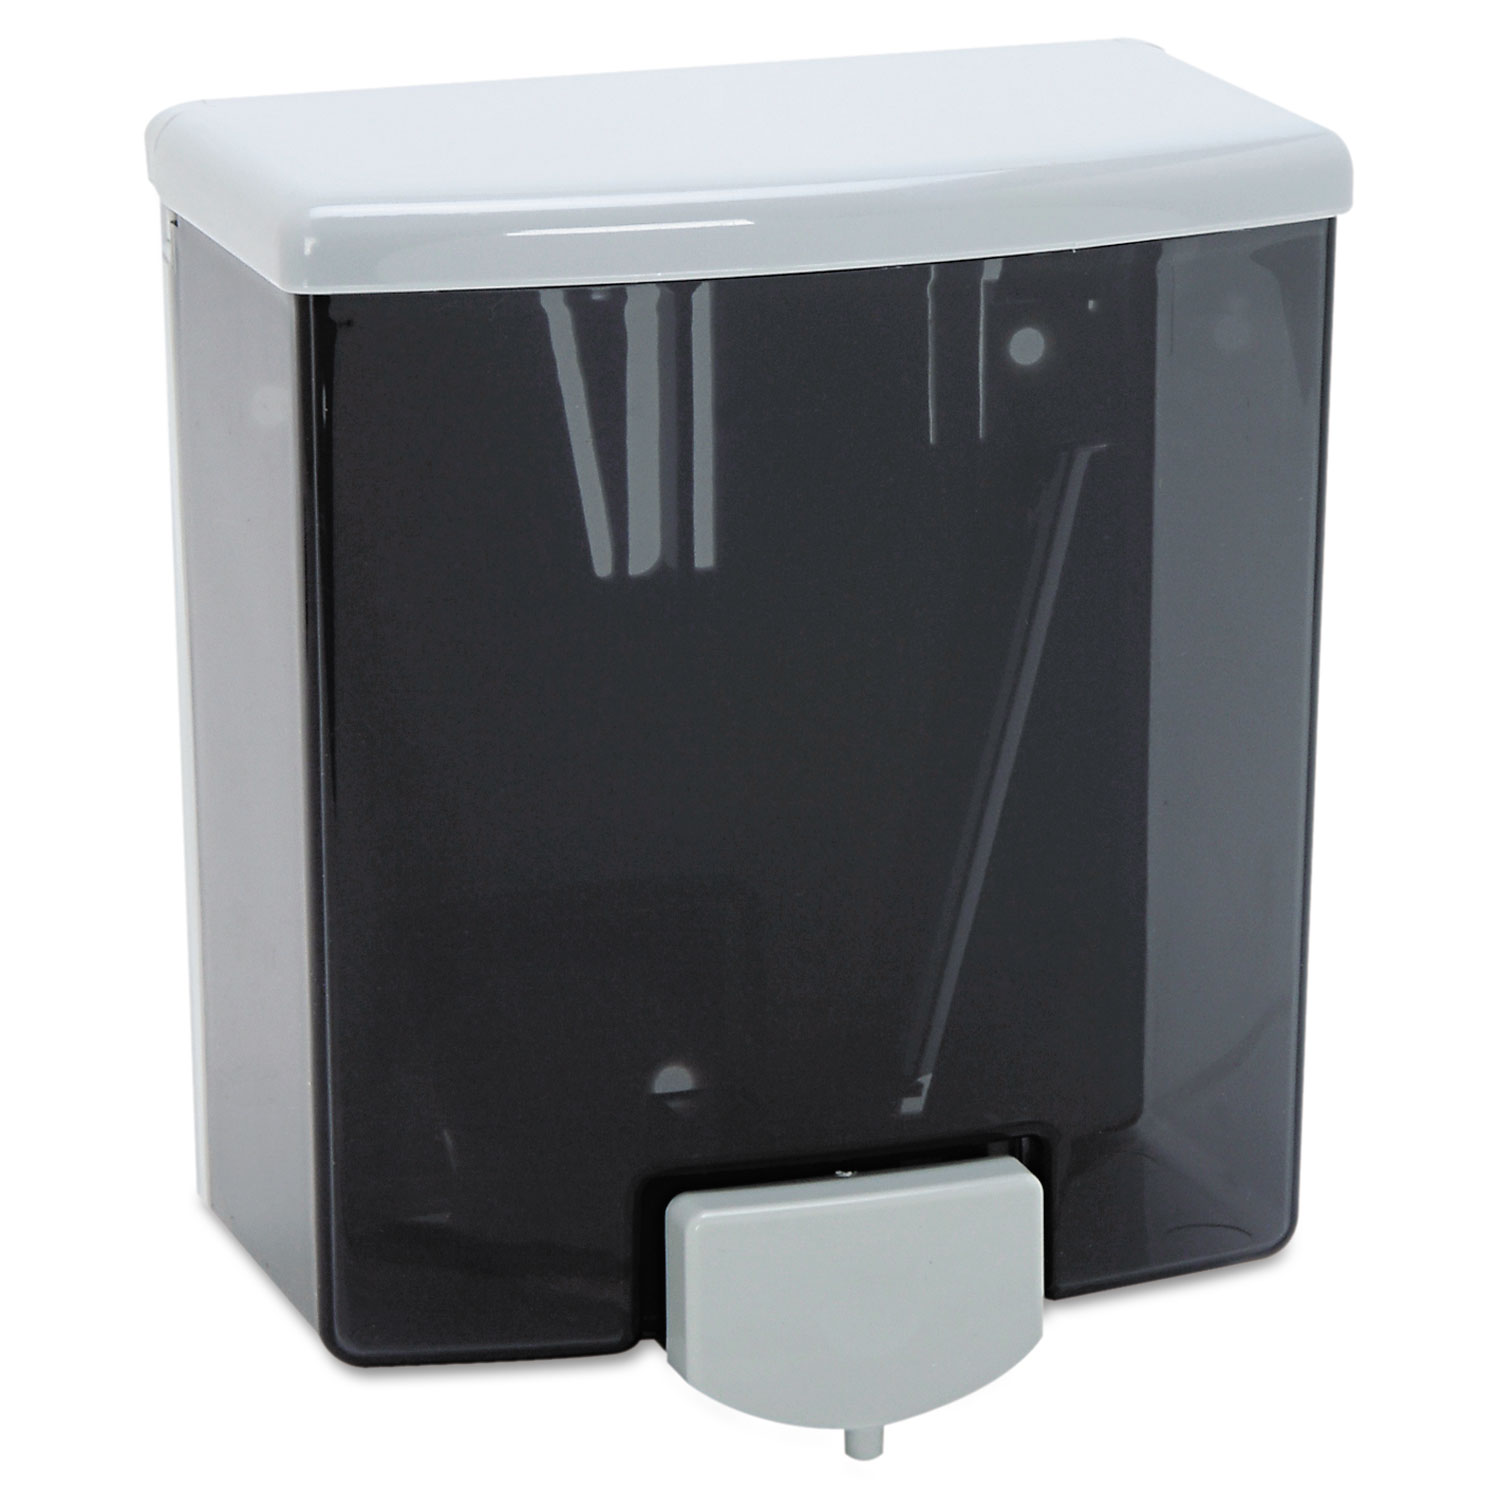 "ClassicSeries Surface-Mounted Liquid Soap Dispenser, 40 oz, 5.81"" x 3.31"" x 6.88"", Black/Gray"